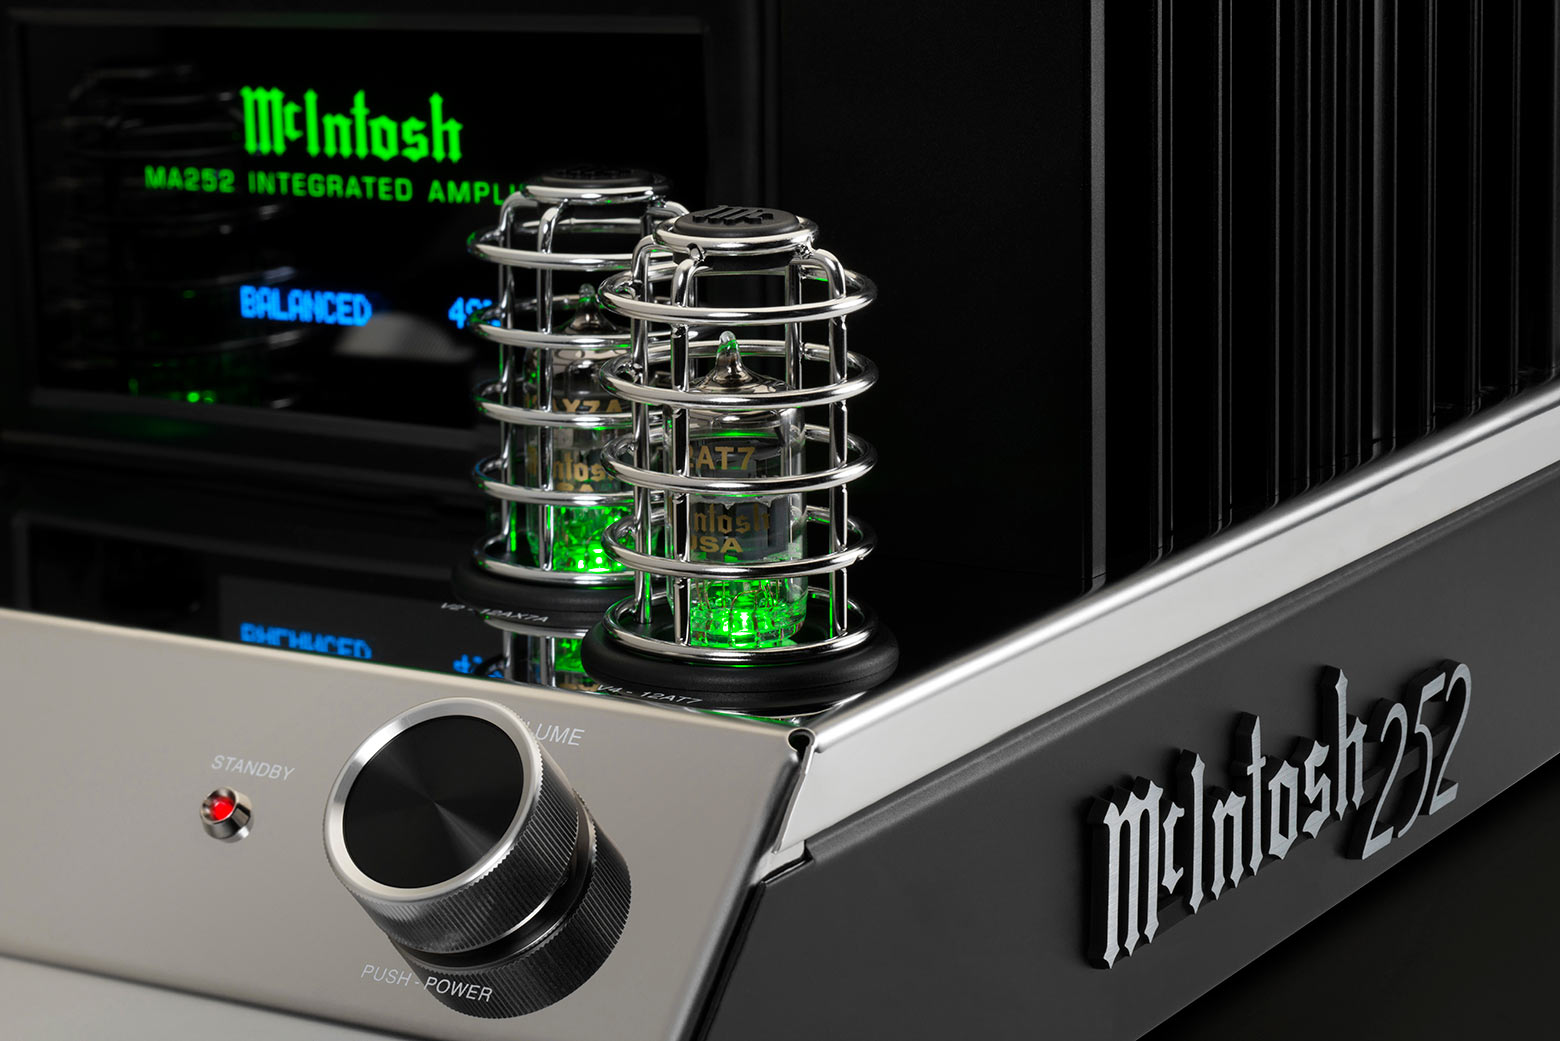 Mcintosh Ma252 Integrated Amplifier Adresses Of Circuits Power Audio Amplifiers Manufacturers